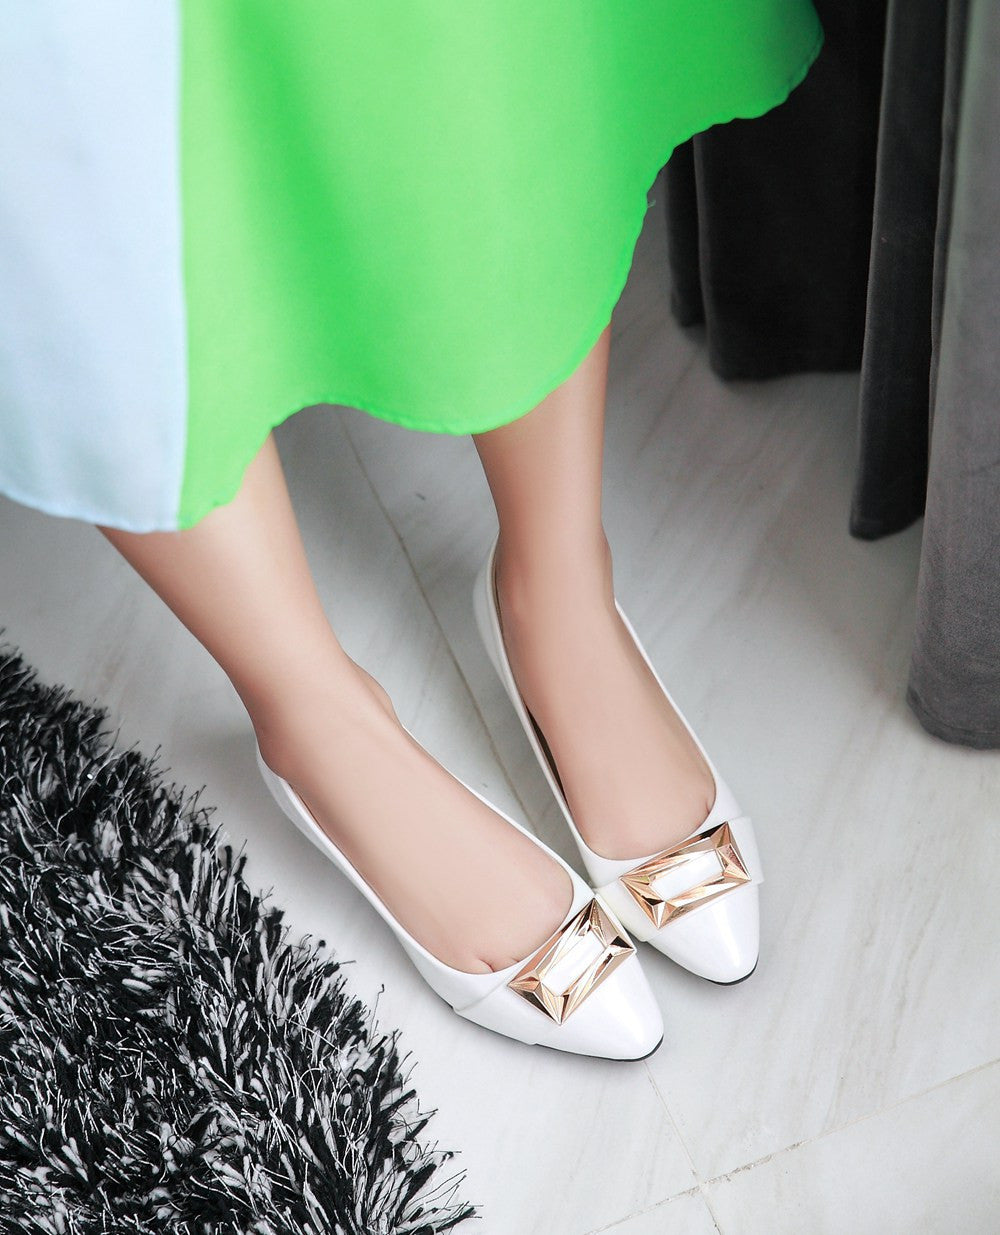 Women Pumps Pointed Toe Sequined Pu Leather Jelly Shoes Woman 3431